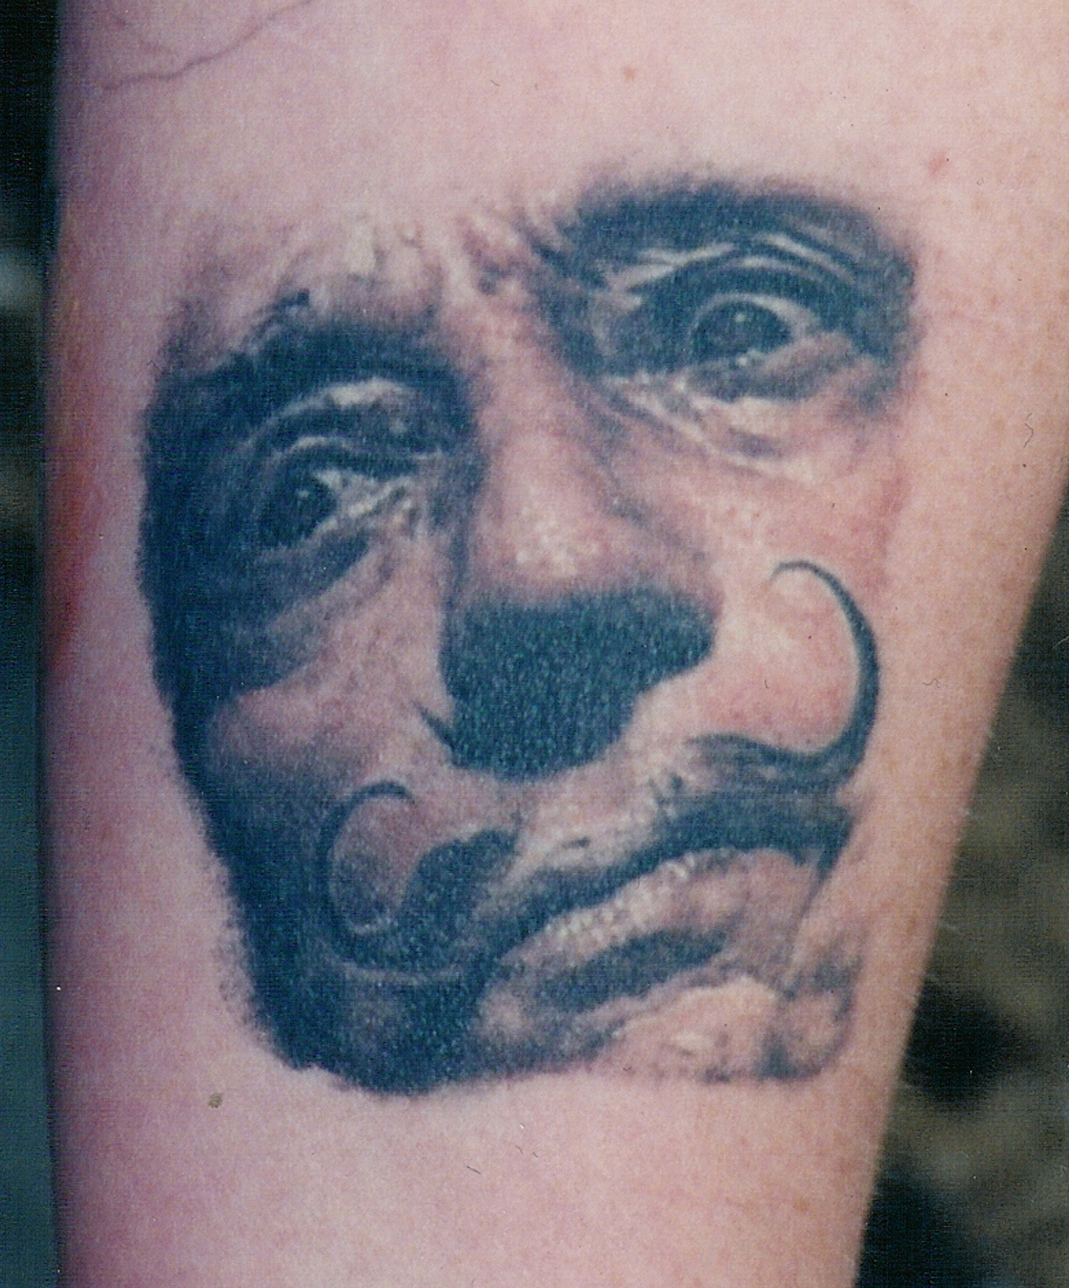 Salvador Dalí Color Portrait Tattoo, (healed photo) tattooed in 2001